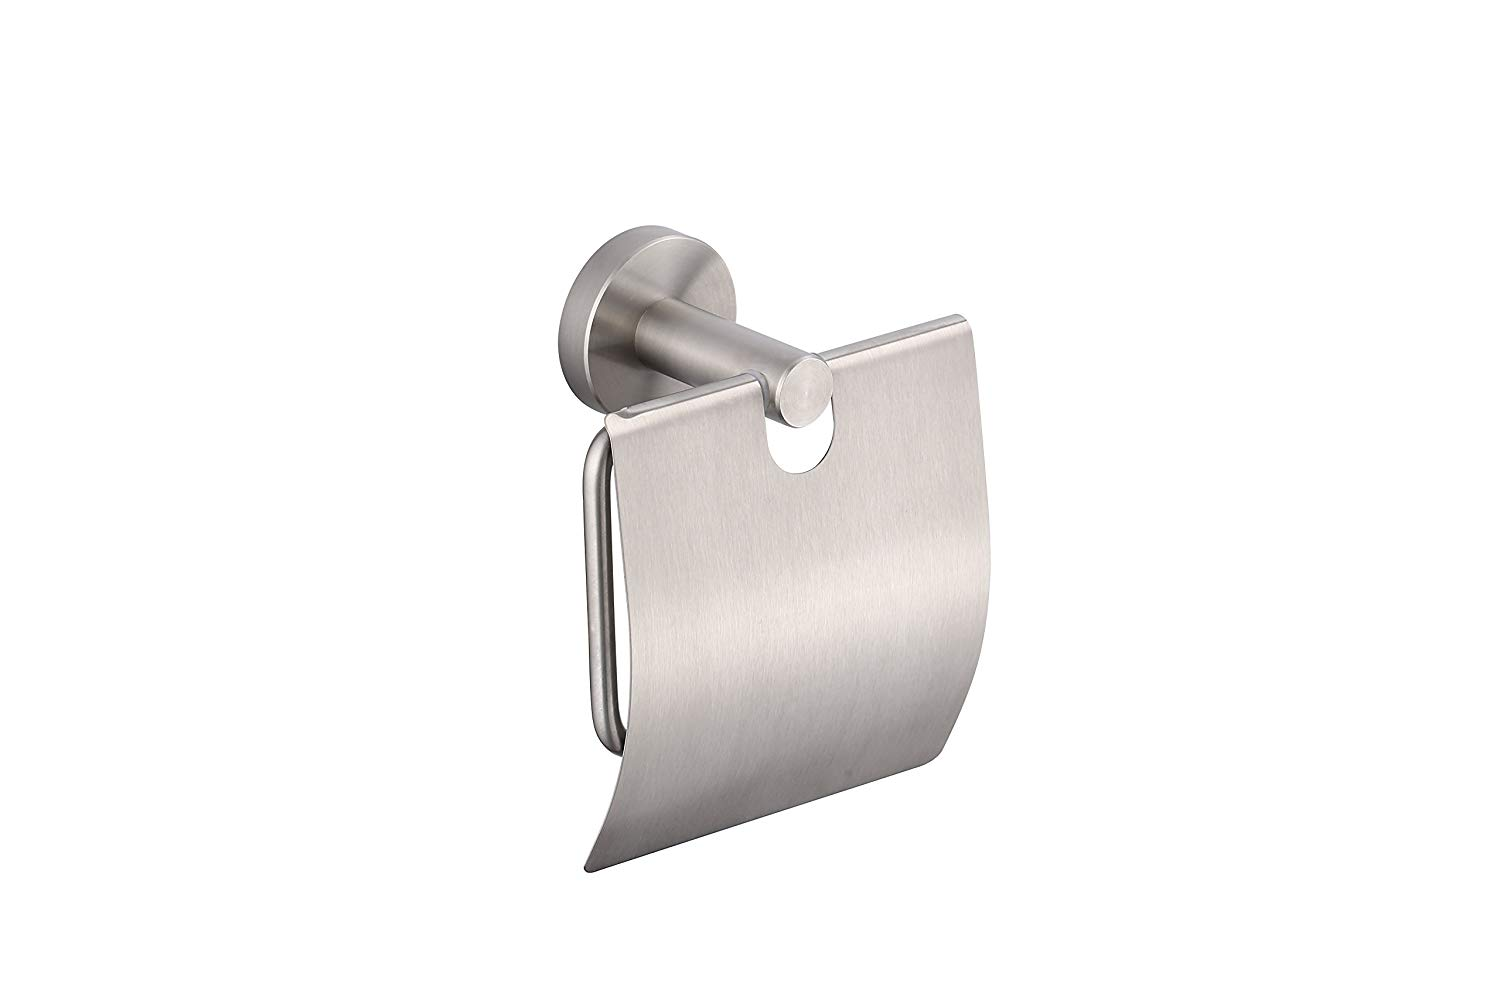 KTY Stainless Steel Toilet Paper Holder Single Roll with Cover, Brush nicket SUS304 Stainless Steel